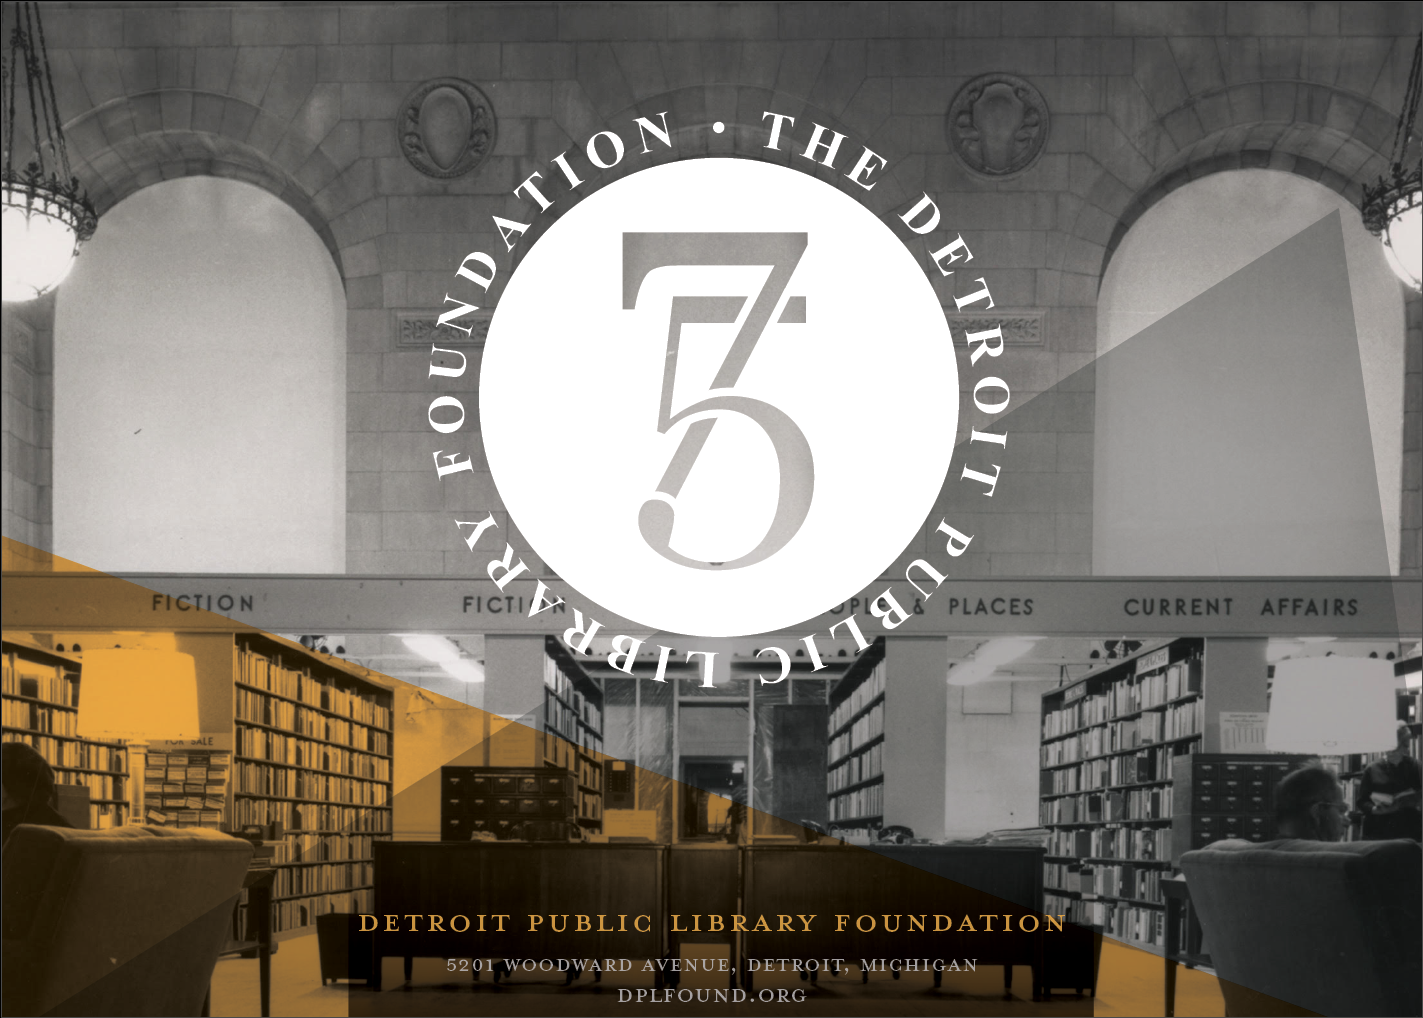 Detroit Public Library Foundation 75th Anniversary Fund